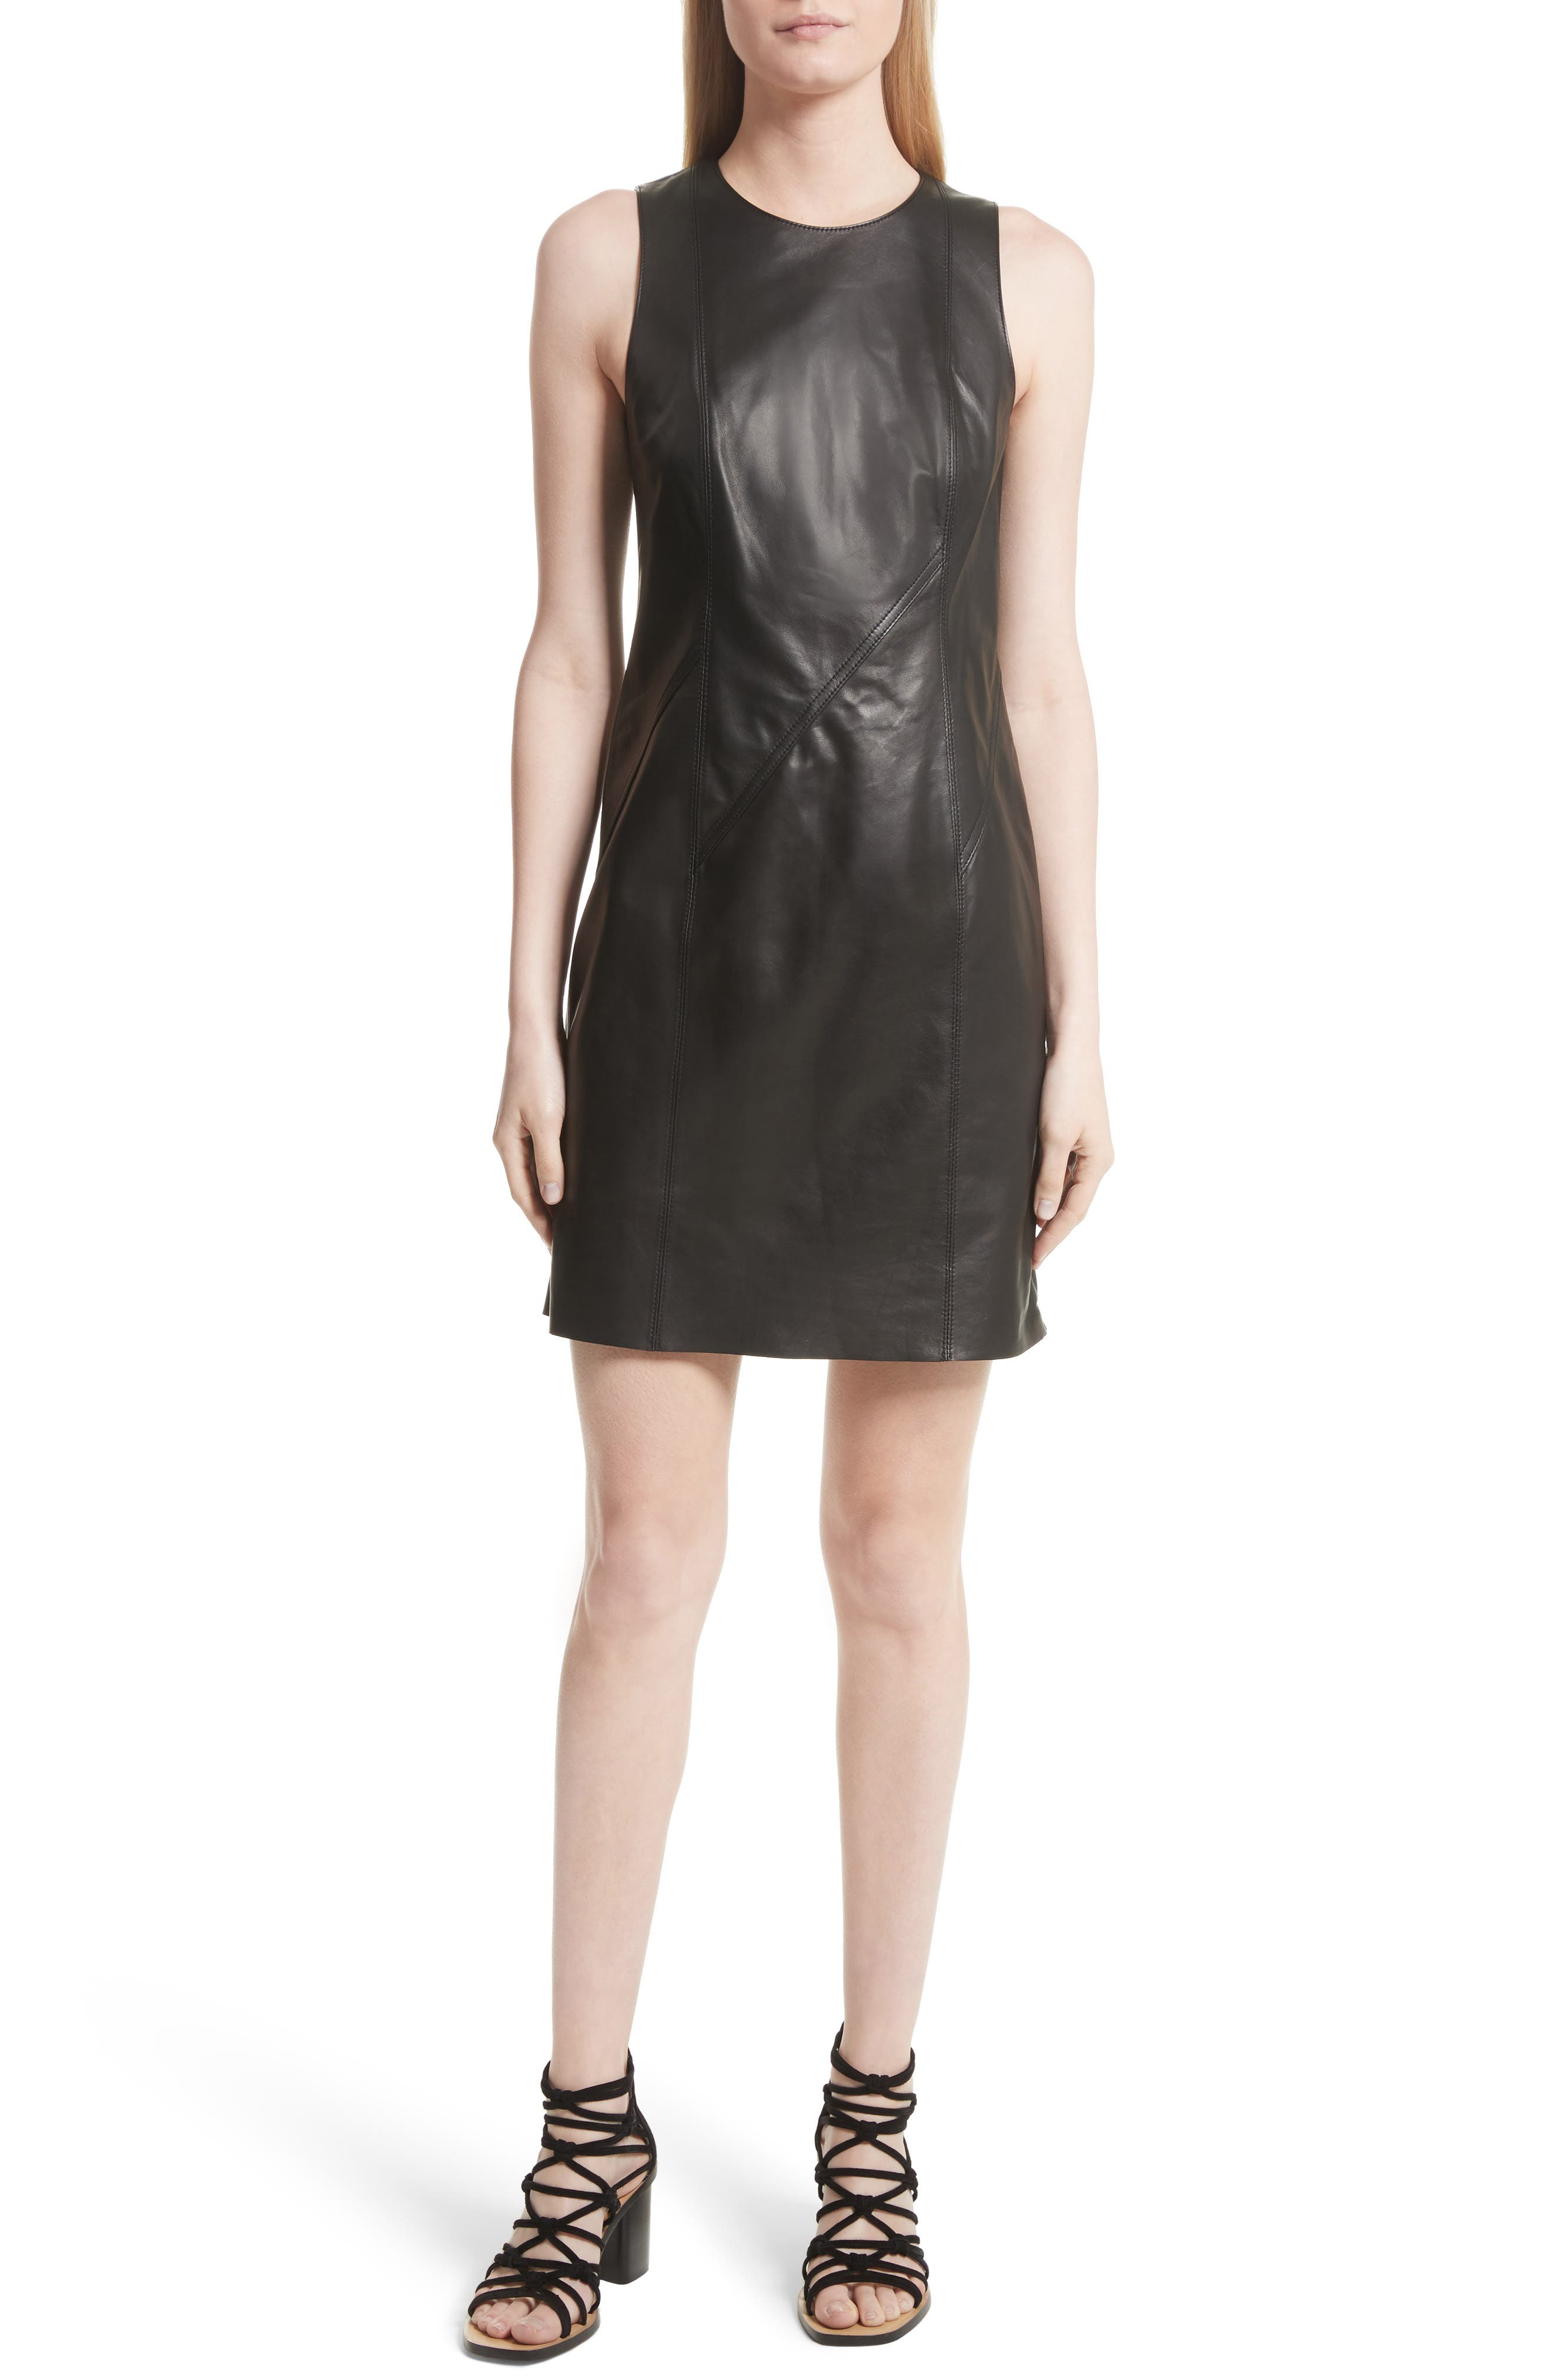 Loxley Leather Dress,                             Main thumbnail 1, color,                             Black